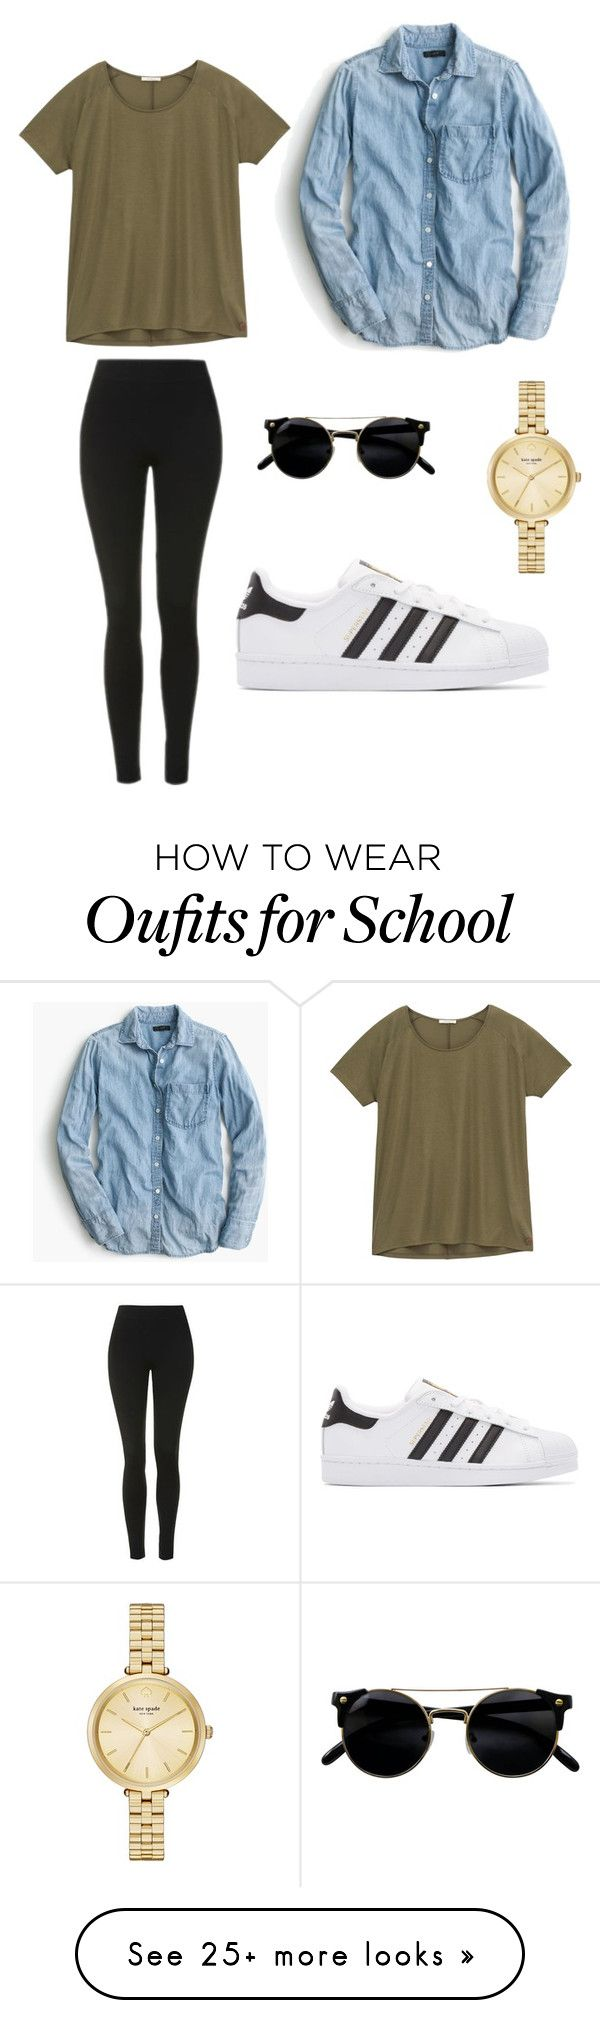 """school outfit"" by piperlauren2001 on Polyvore featuring J.Crew, Topshop, Lee, adidas Originals, Kate Spade, school and polyvoreeditorial"